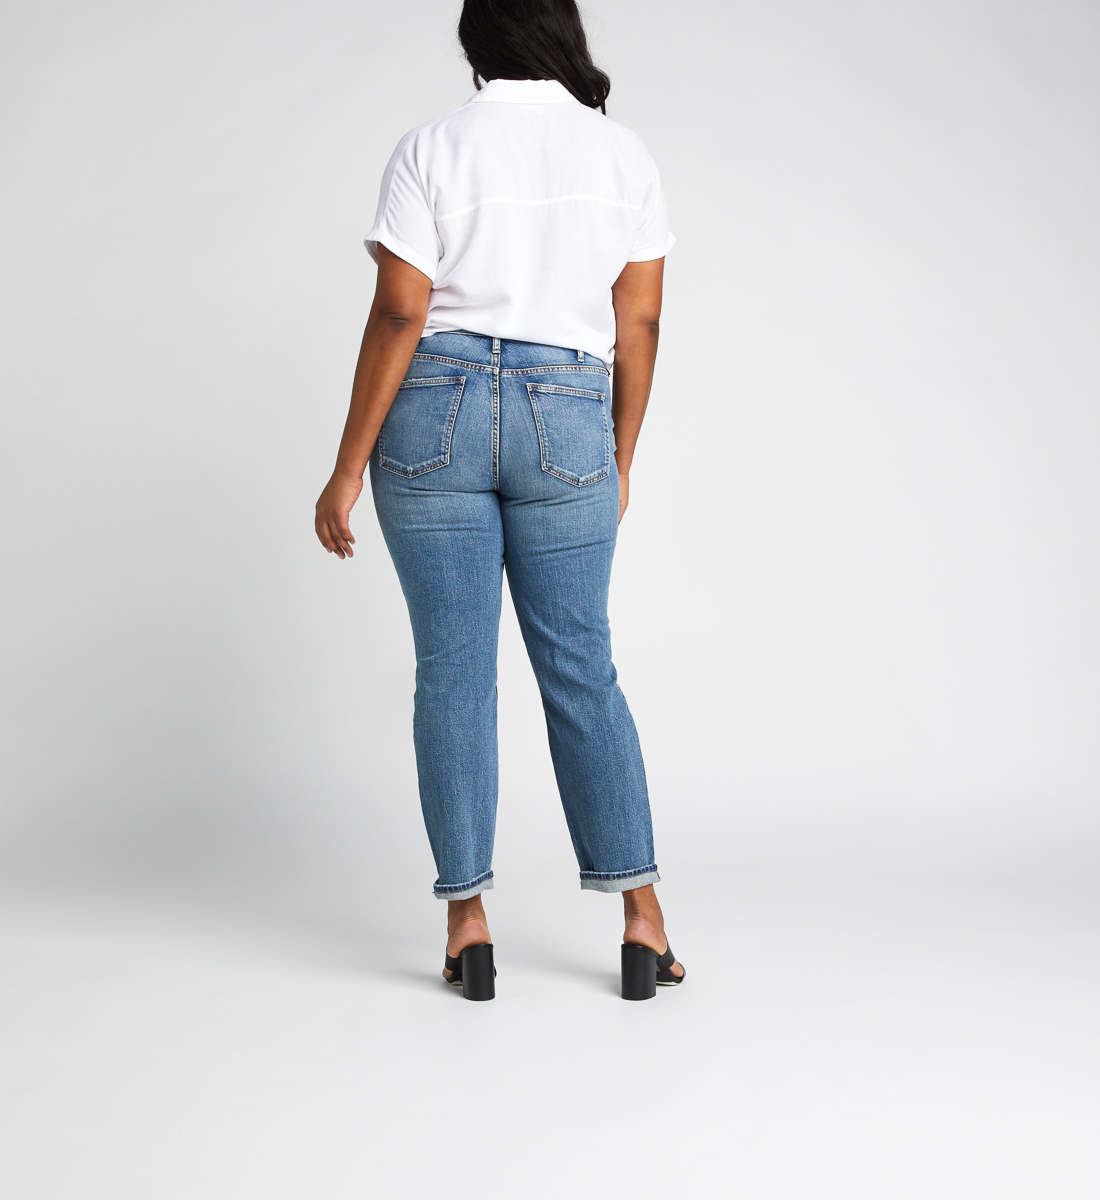 Frisco High Rise Tapered Leg Jeans Plus Size, , hi-res